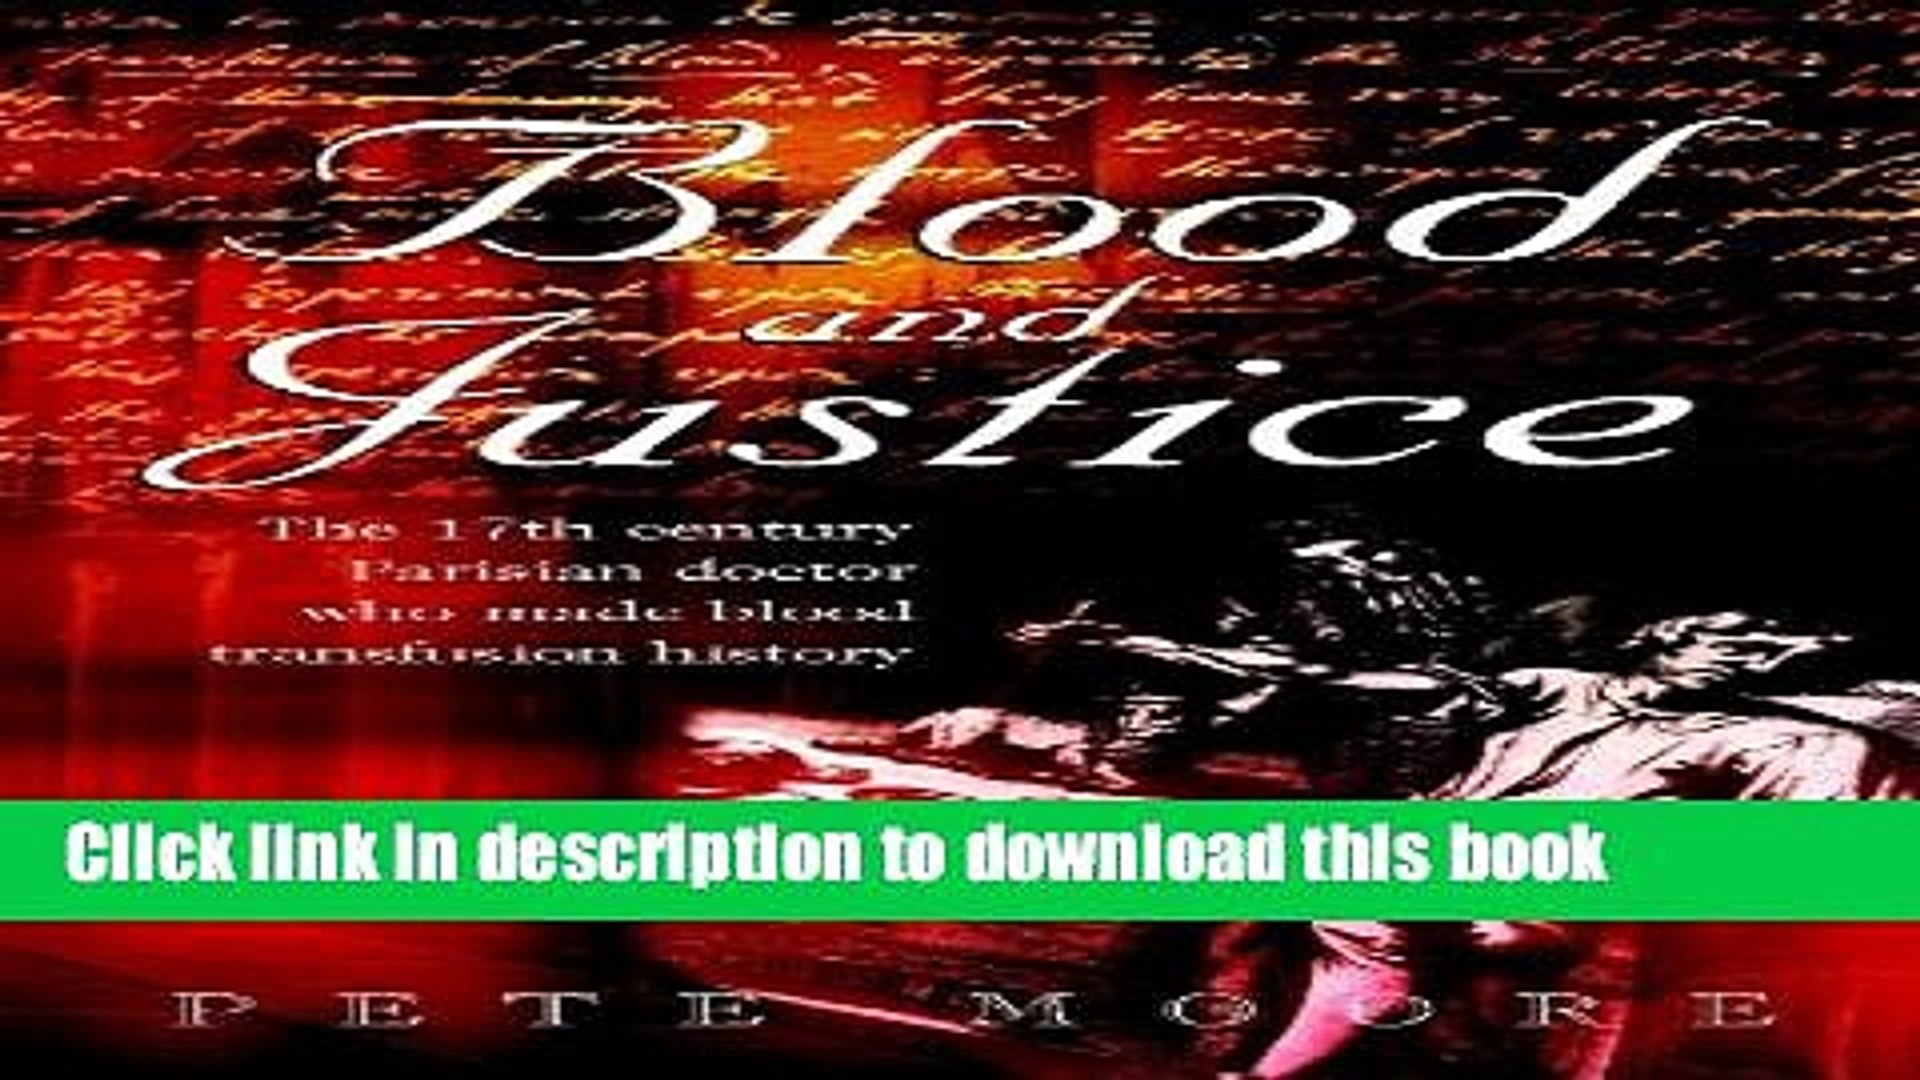 Collection Book Blood and Justice: The 17 Century Parisian Doctor Who Made Blood Transfusion History